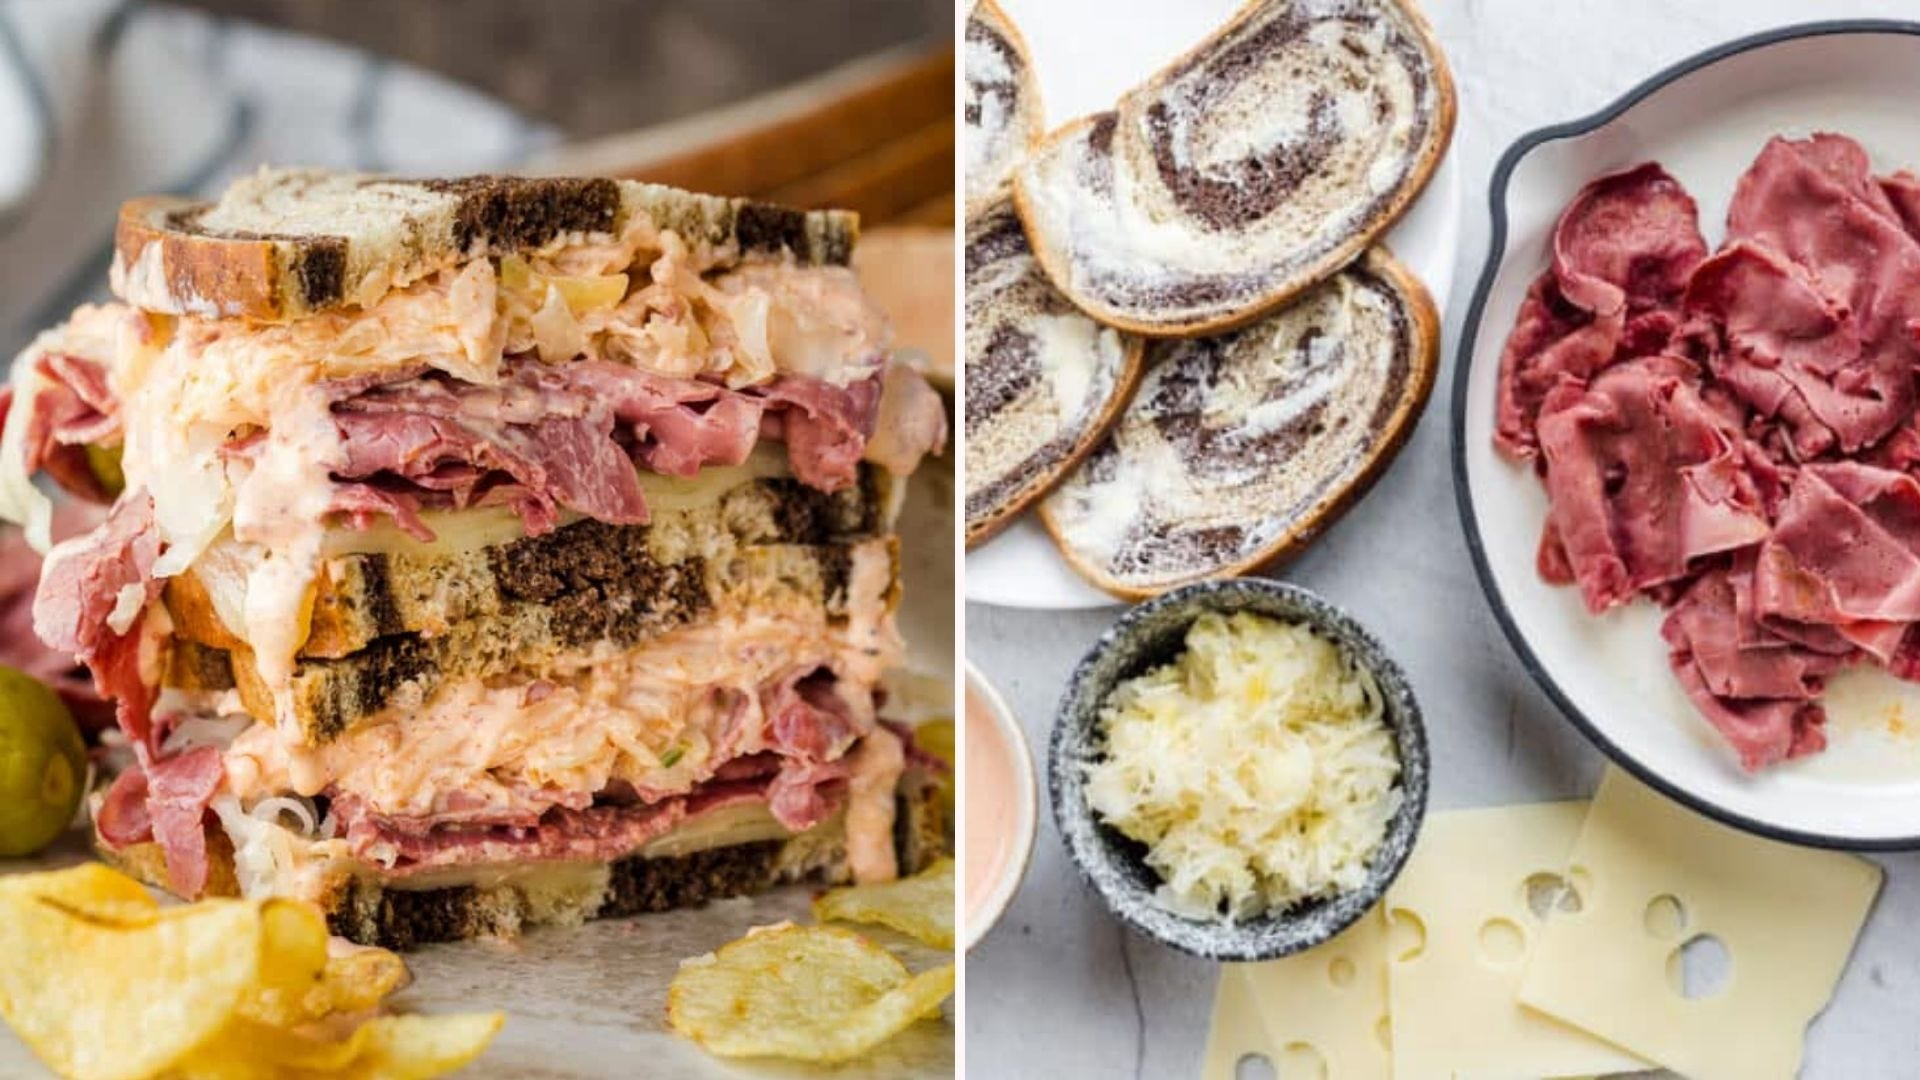 Two side by side images of a homemade Rueben sandwich. The left image is of a sandwich sliced in half and stacked high with Russian dressing dripping down, with kettle cooked chips surrounding the sandwich. The right image is of buttered rye bread, sliced cheese, corned beef and sauerkraut in a bowl.